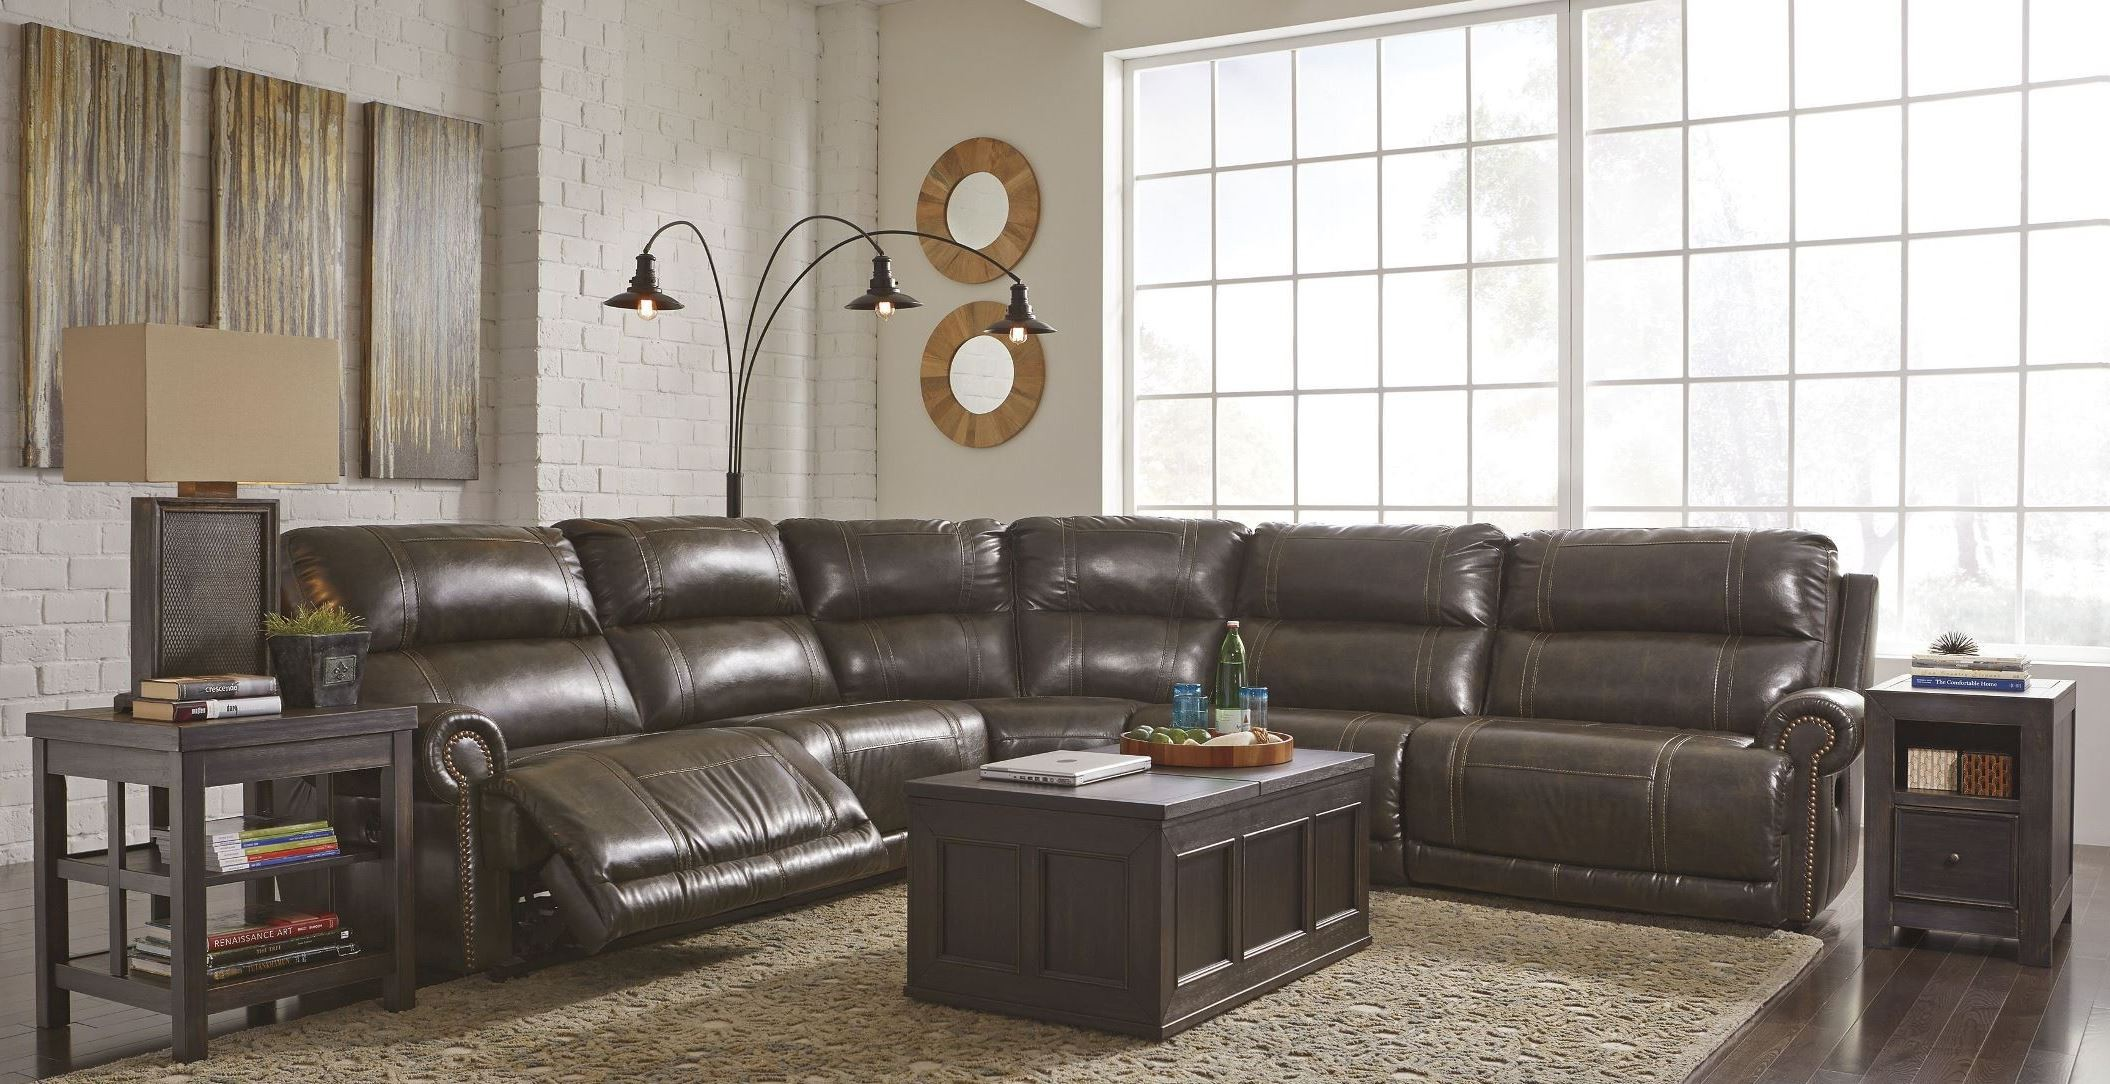 Dak Durablend Antique Reclining Sectional From Ashley